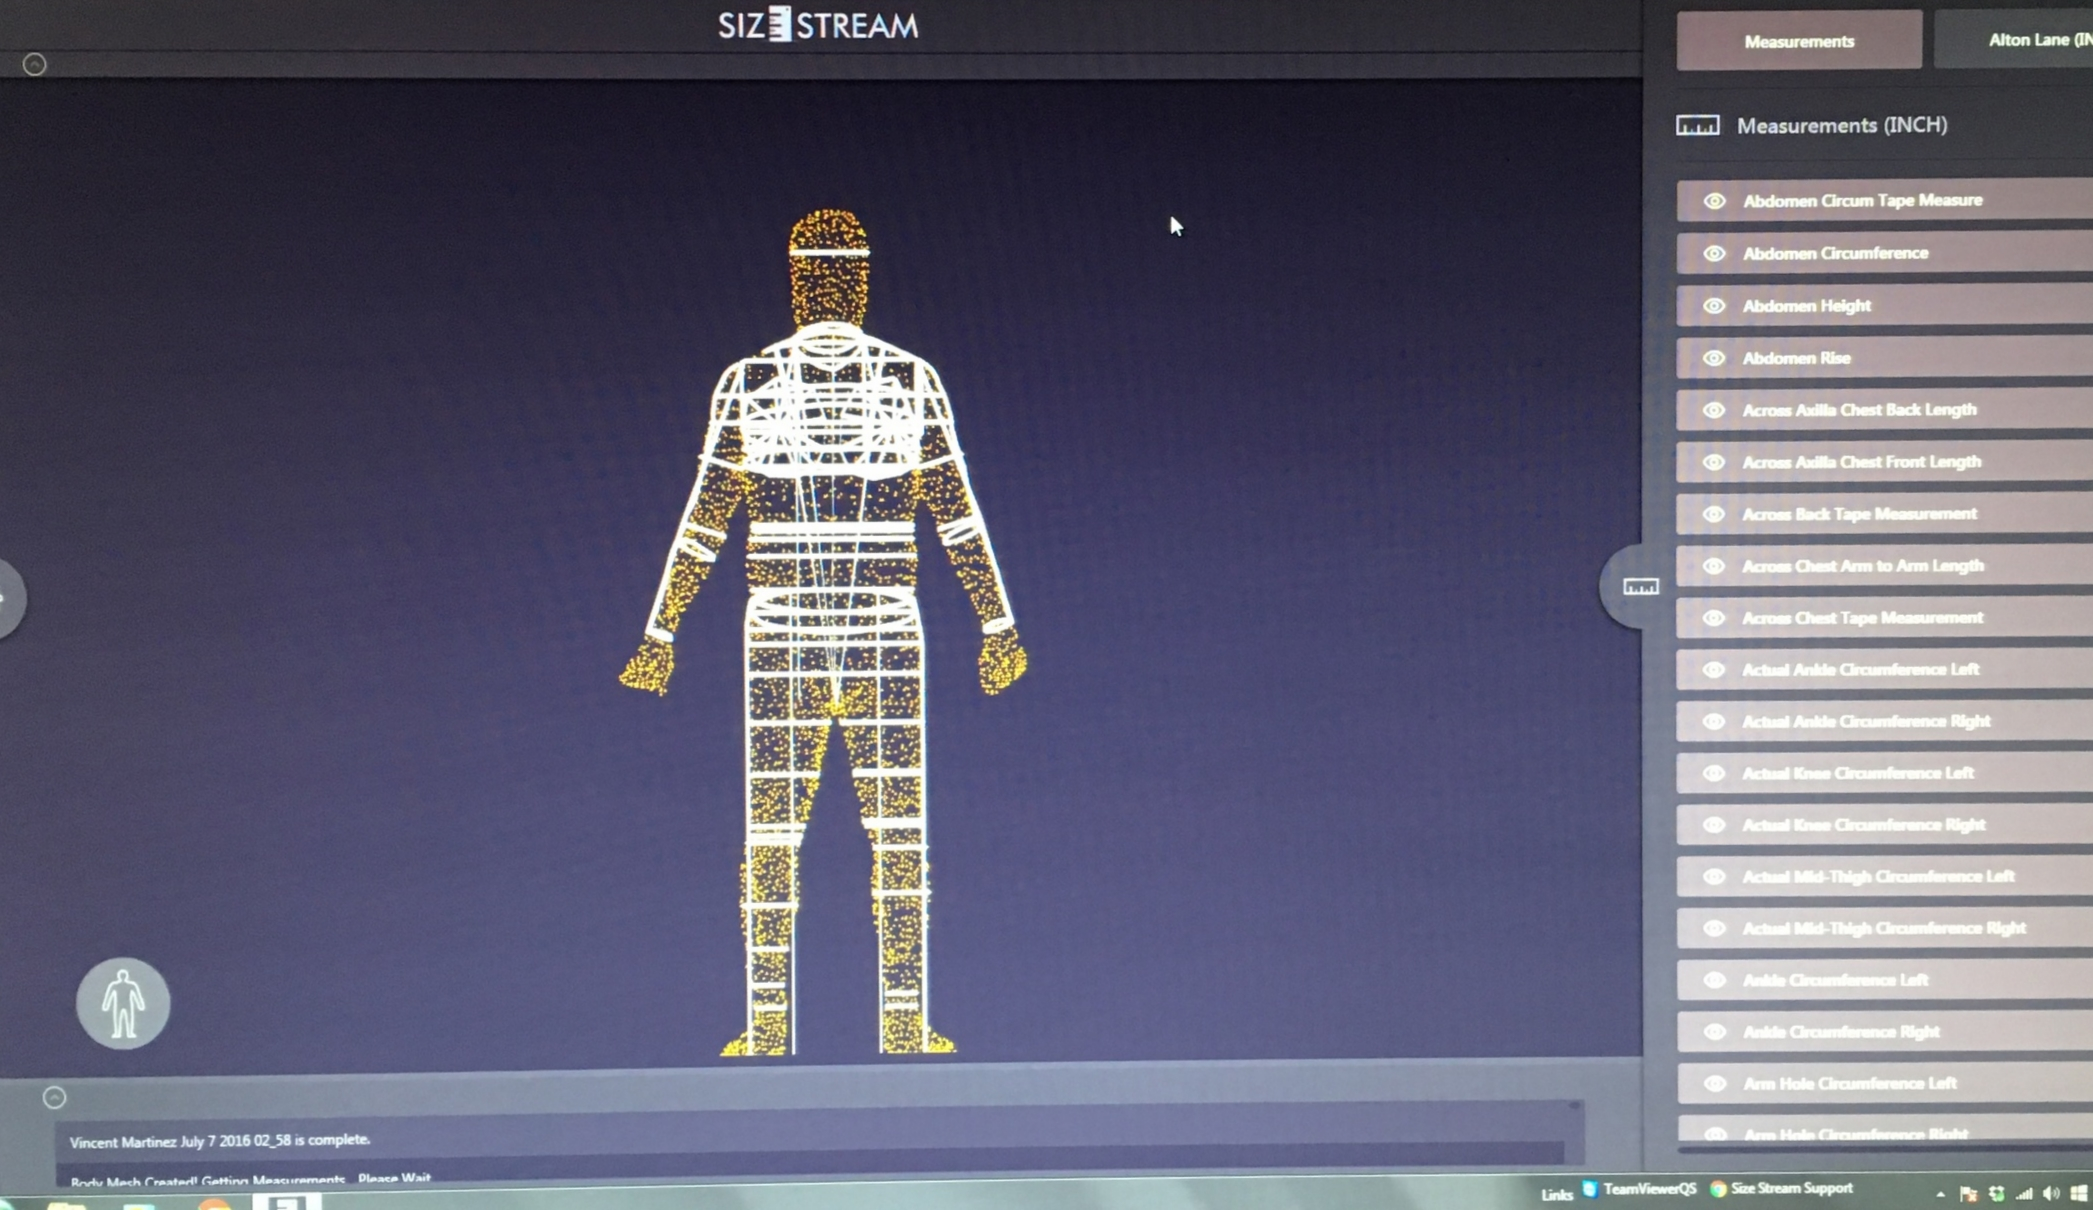 That's me in 3D...